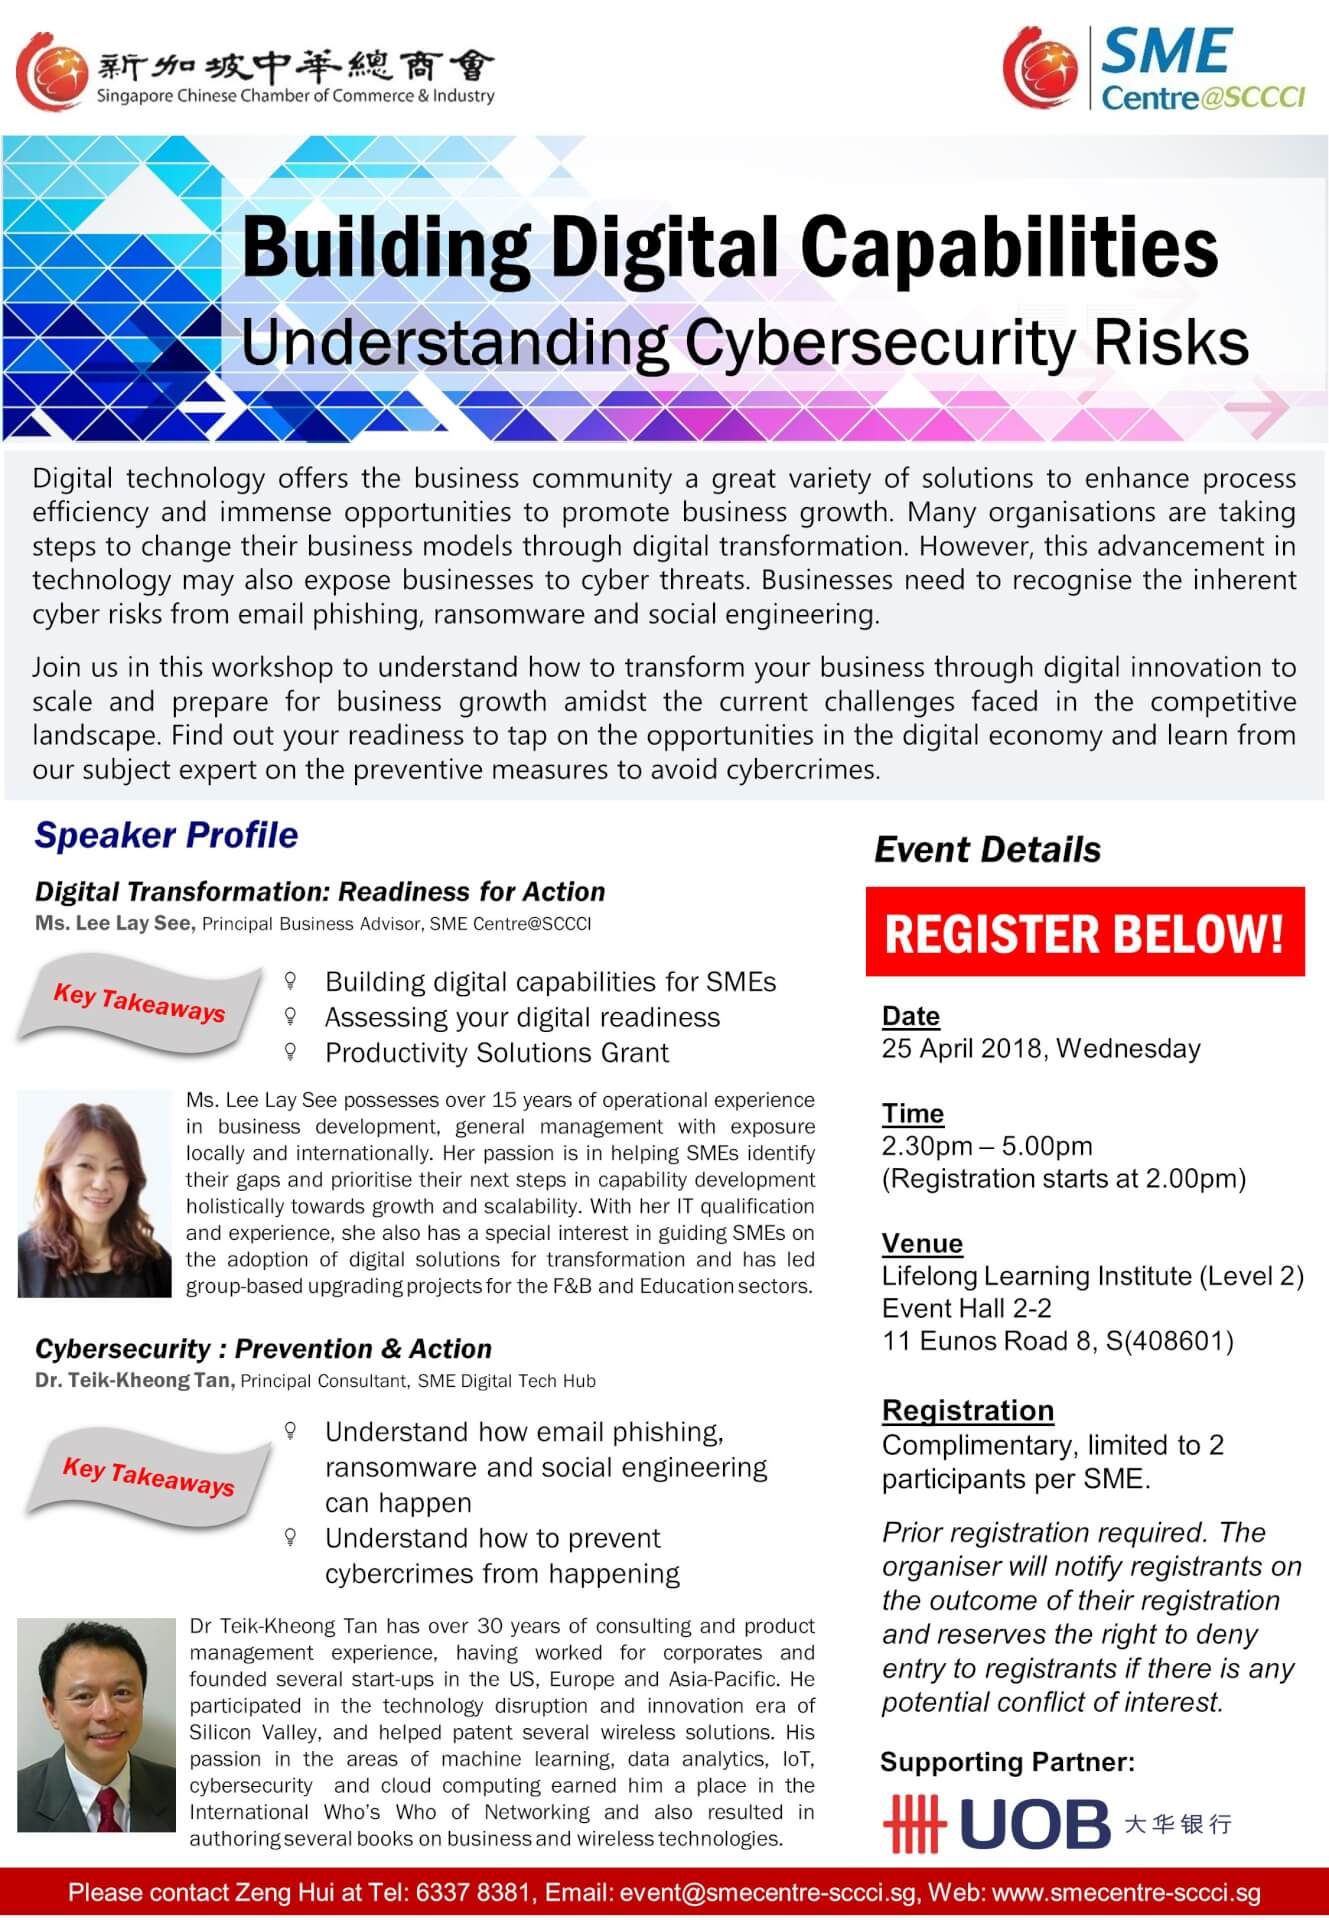 Digital Cybersecurity Workshop